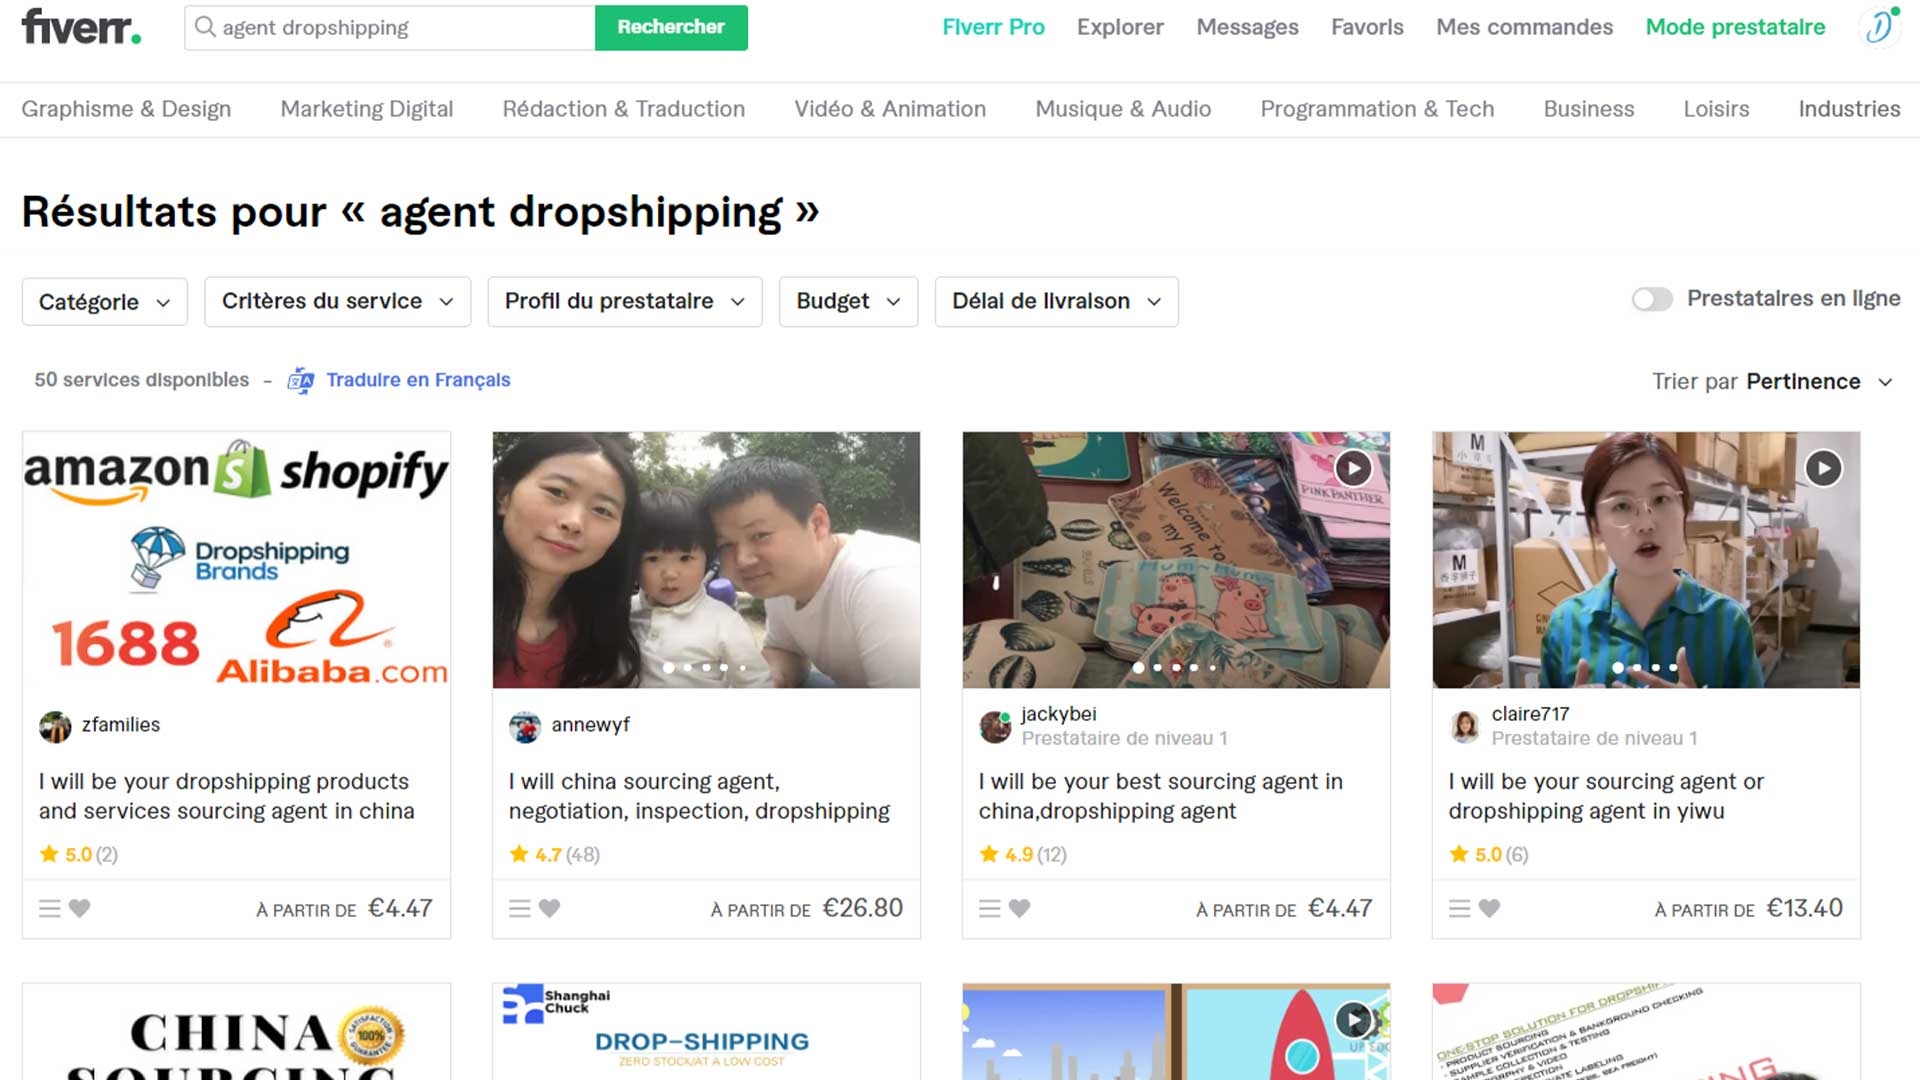 Agent dropshipping fiverr